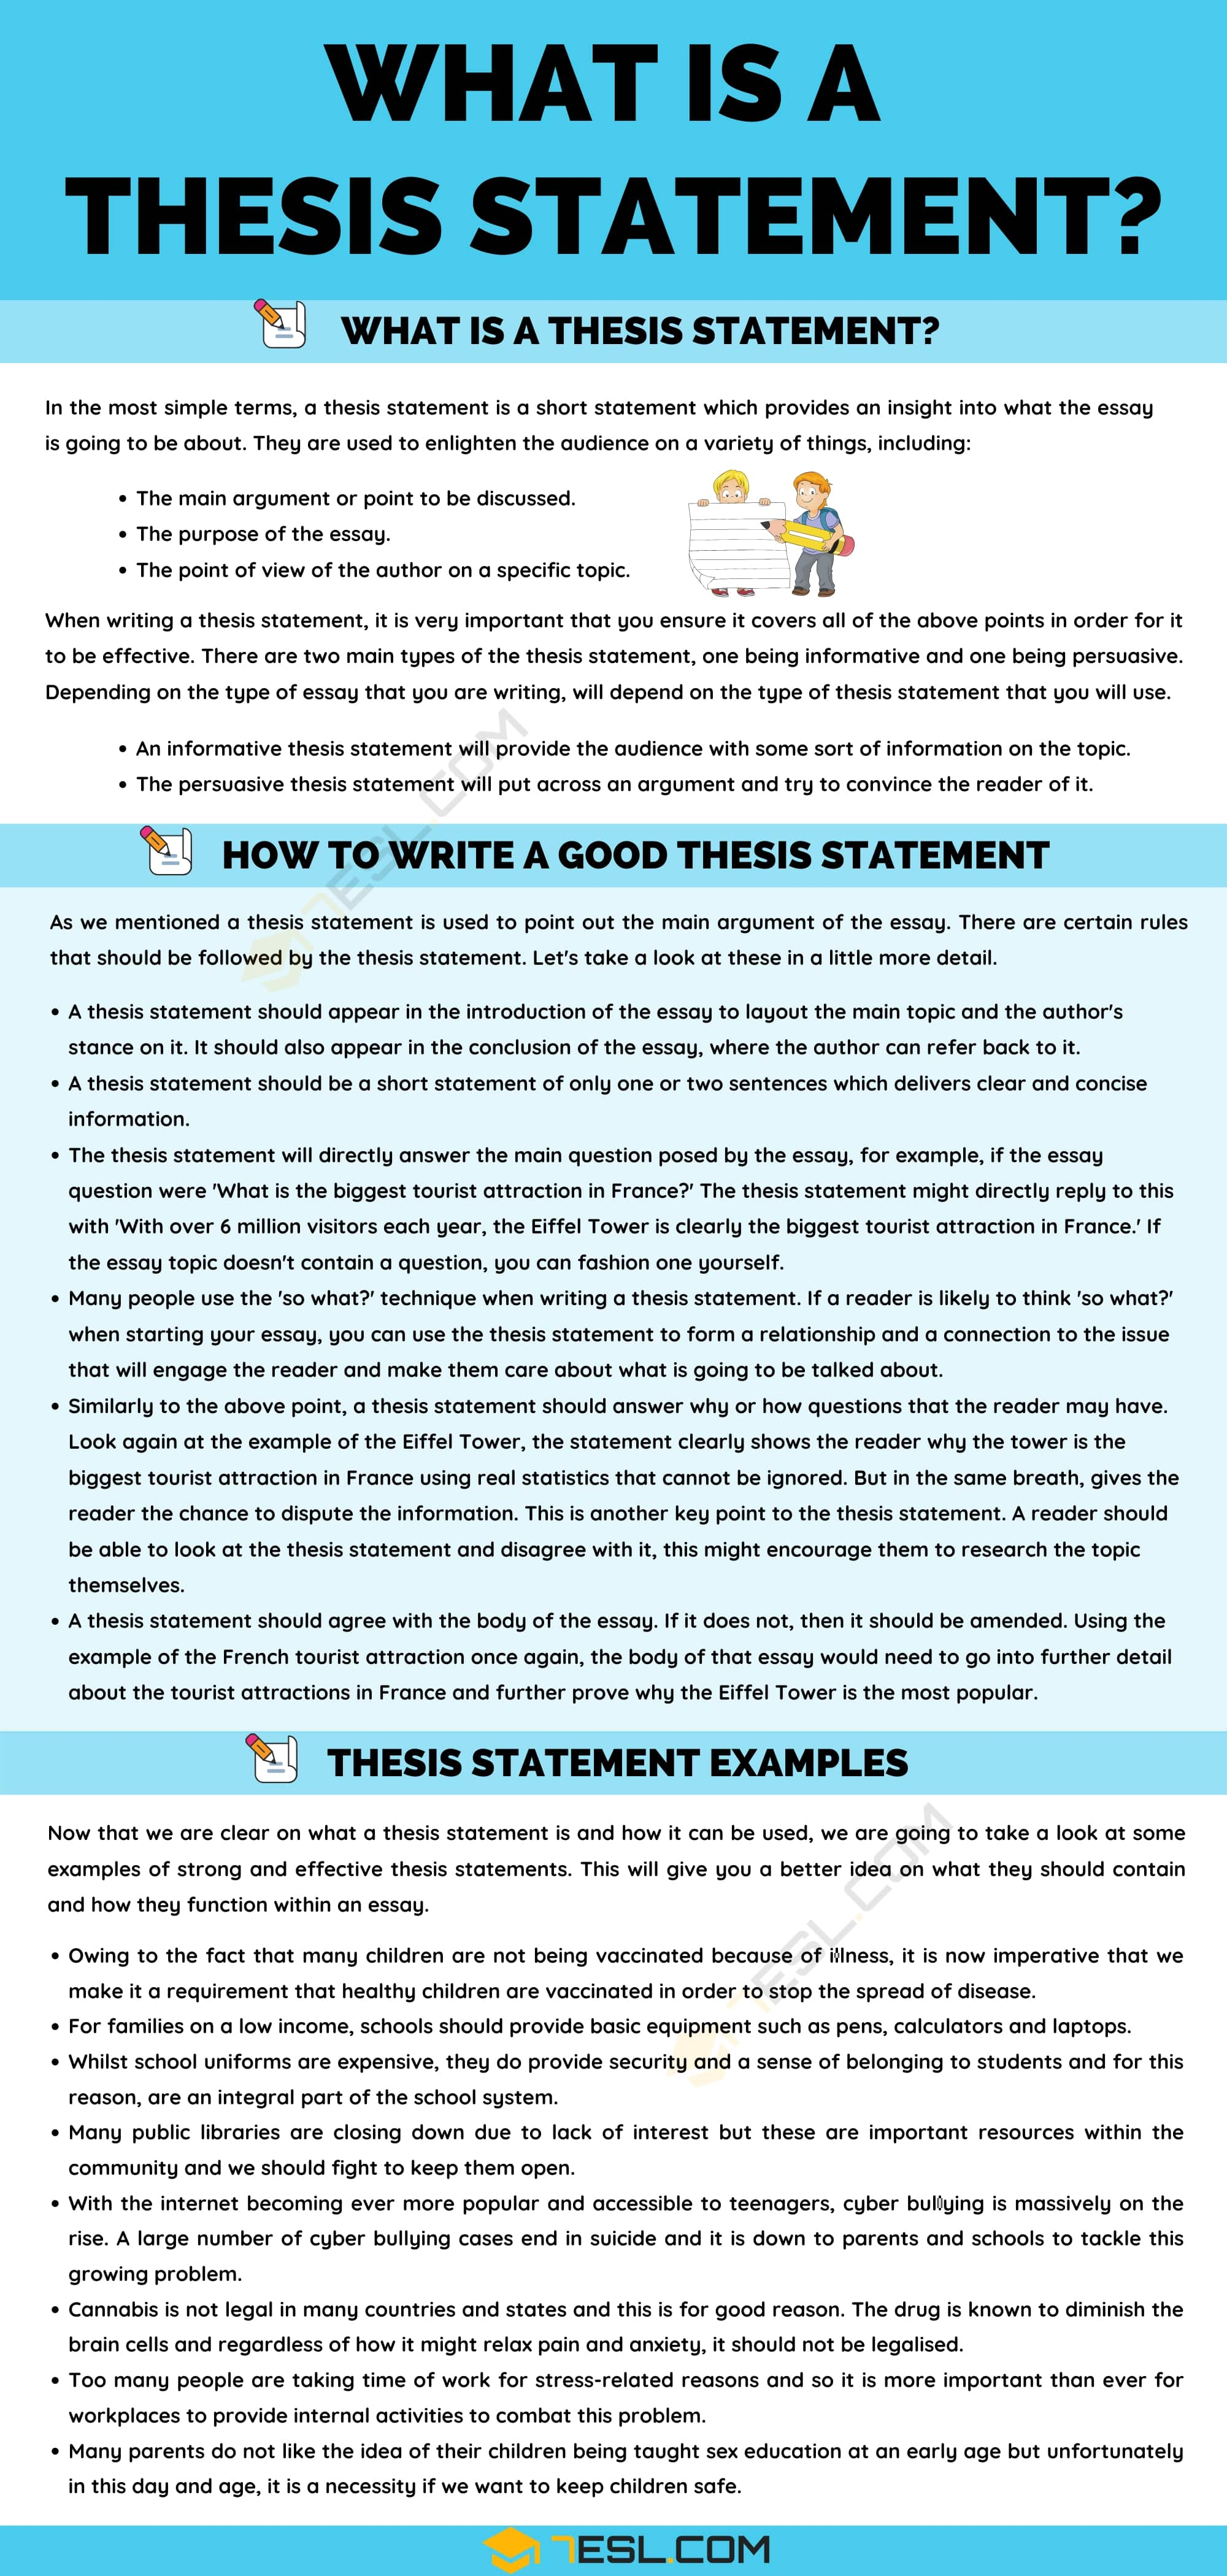 Thesis Statement: Definition, Useful Tips and Examples of Thesis Statement